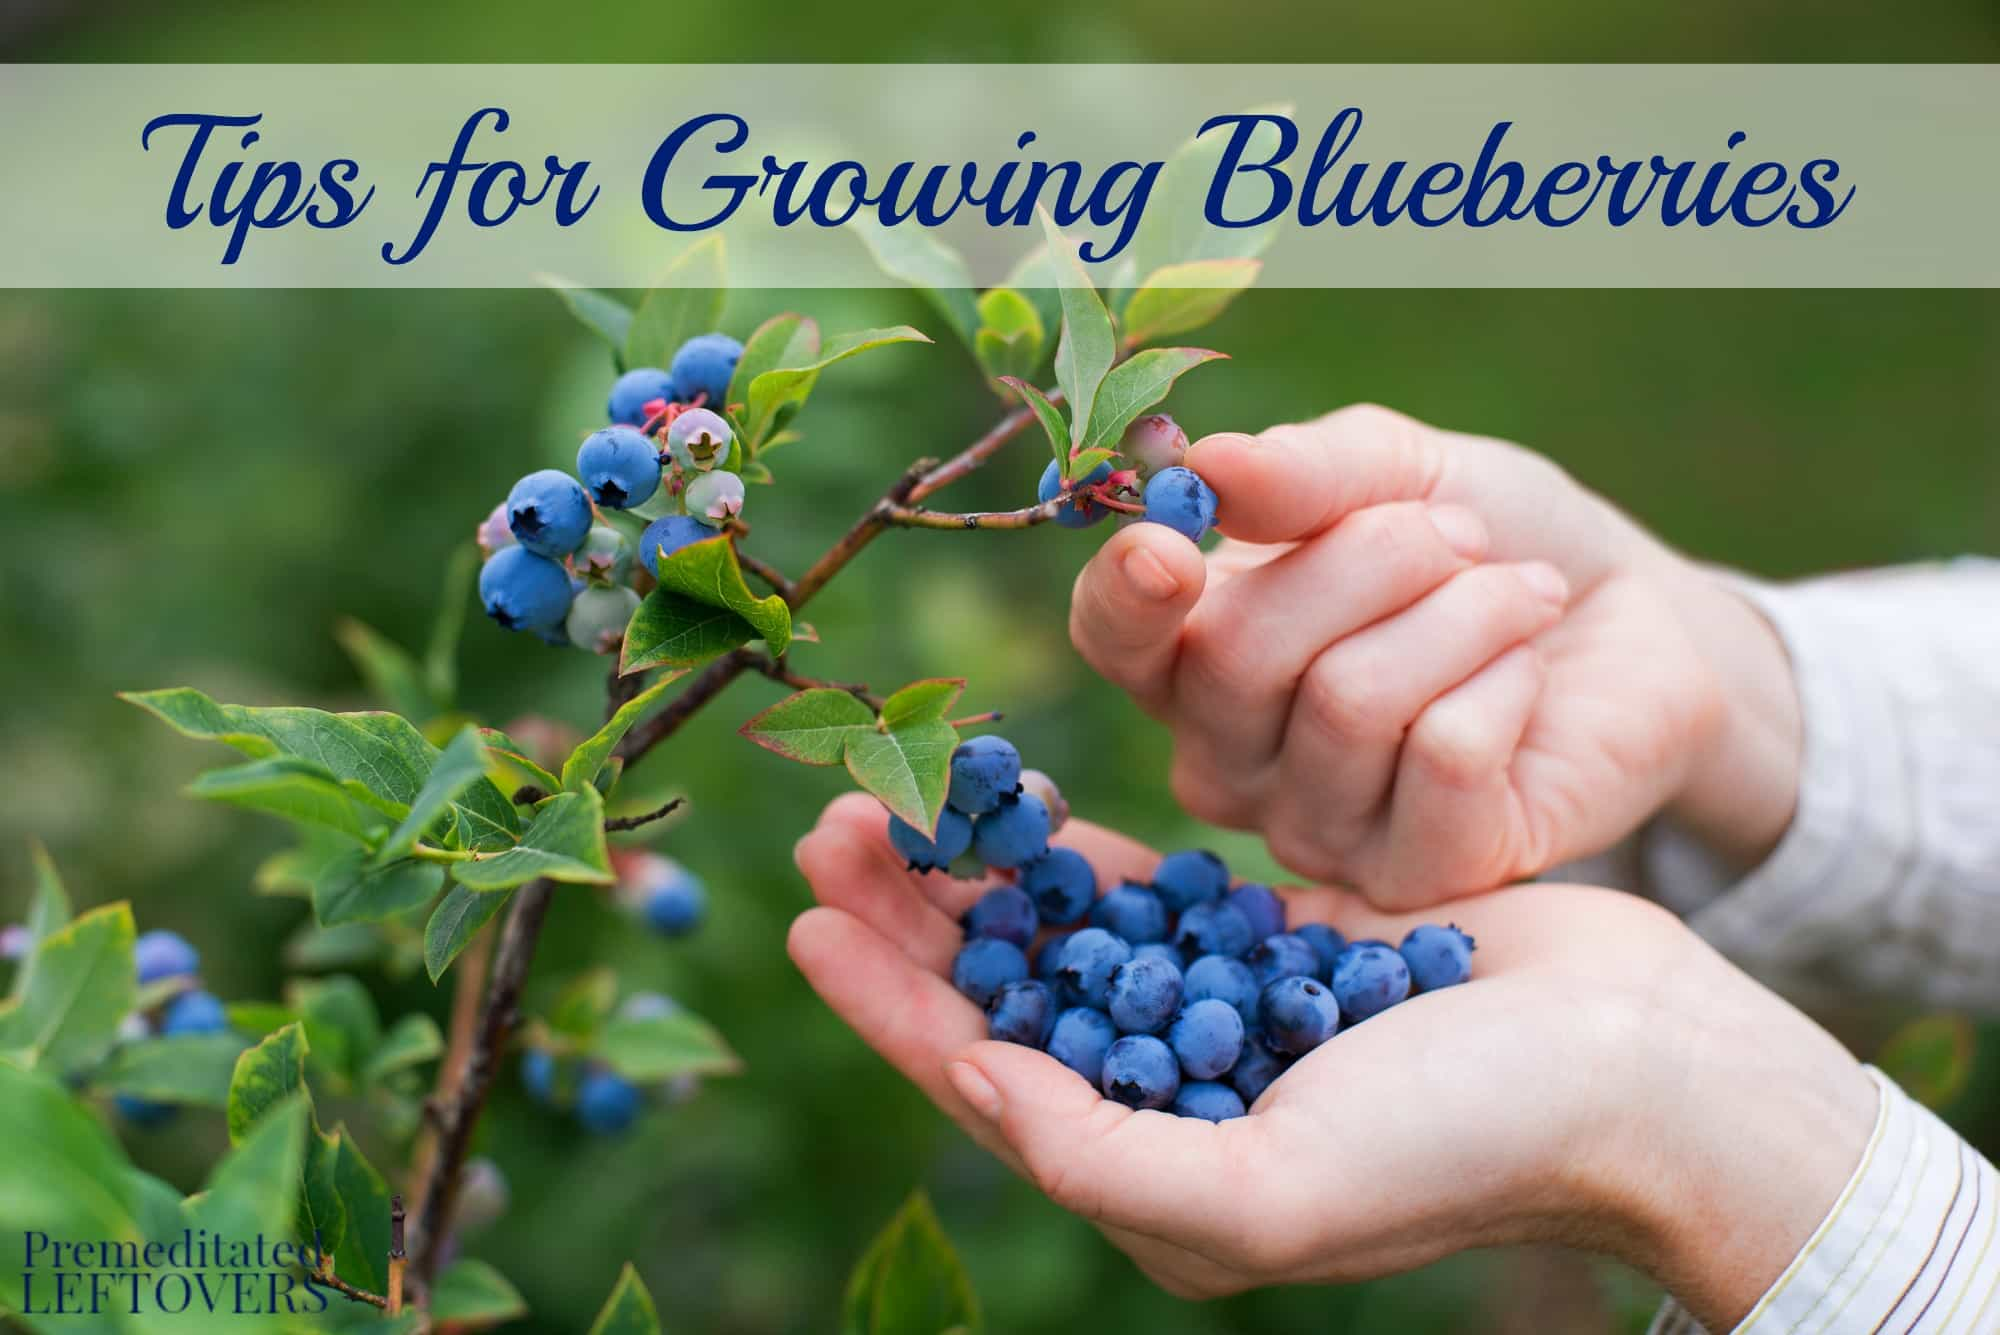 These tips for growing blueberries include everything from planting to harvest, including growing blueberries in containers